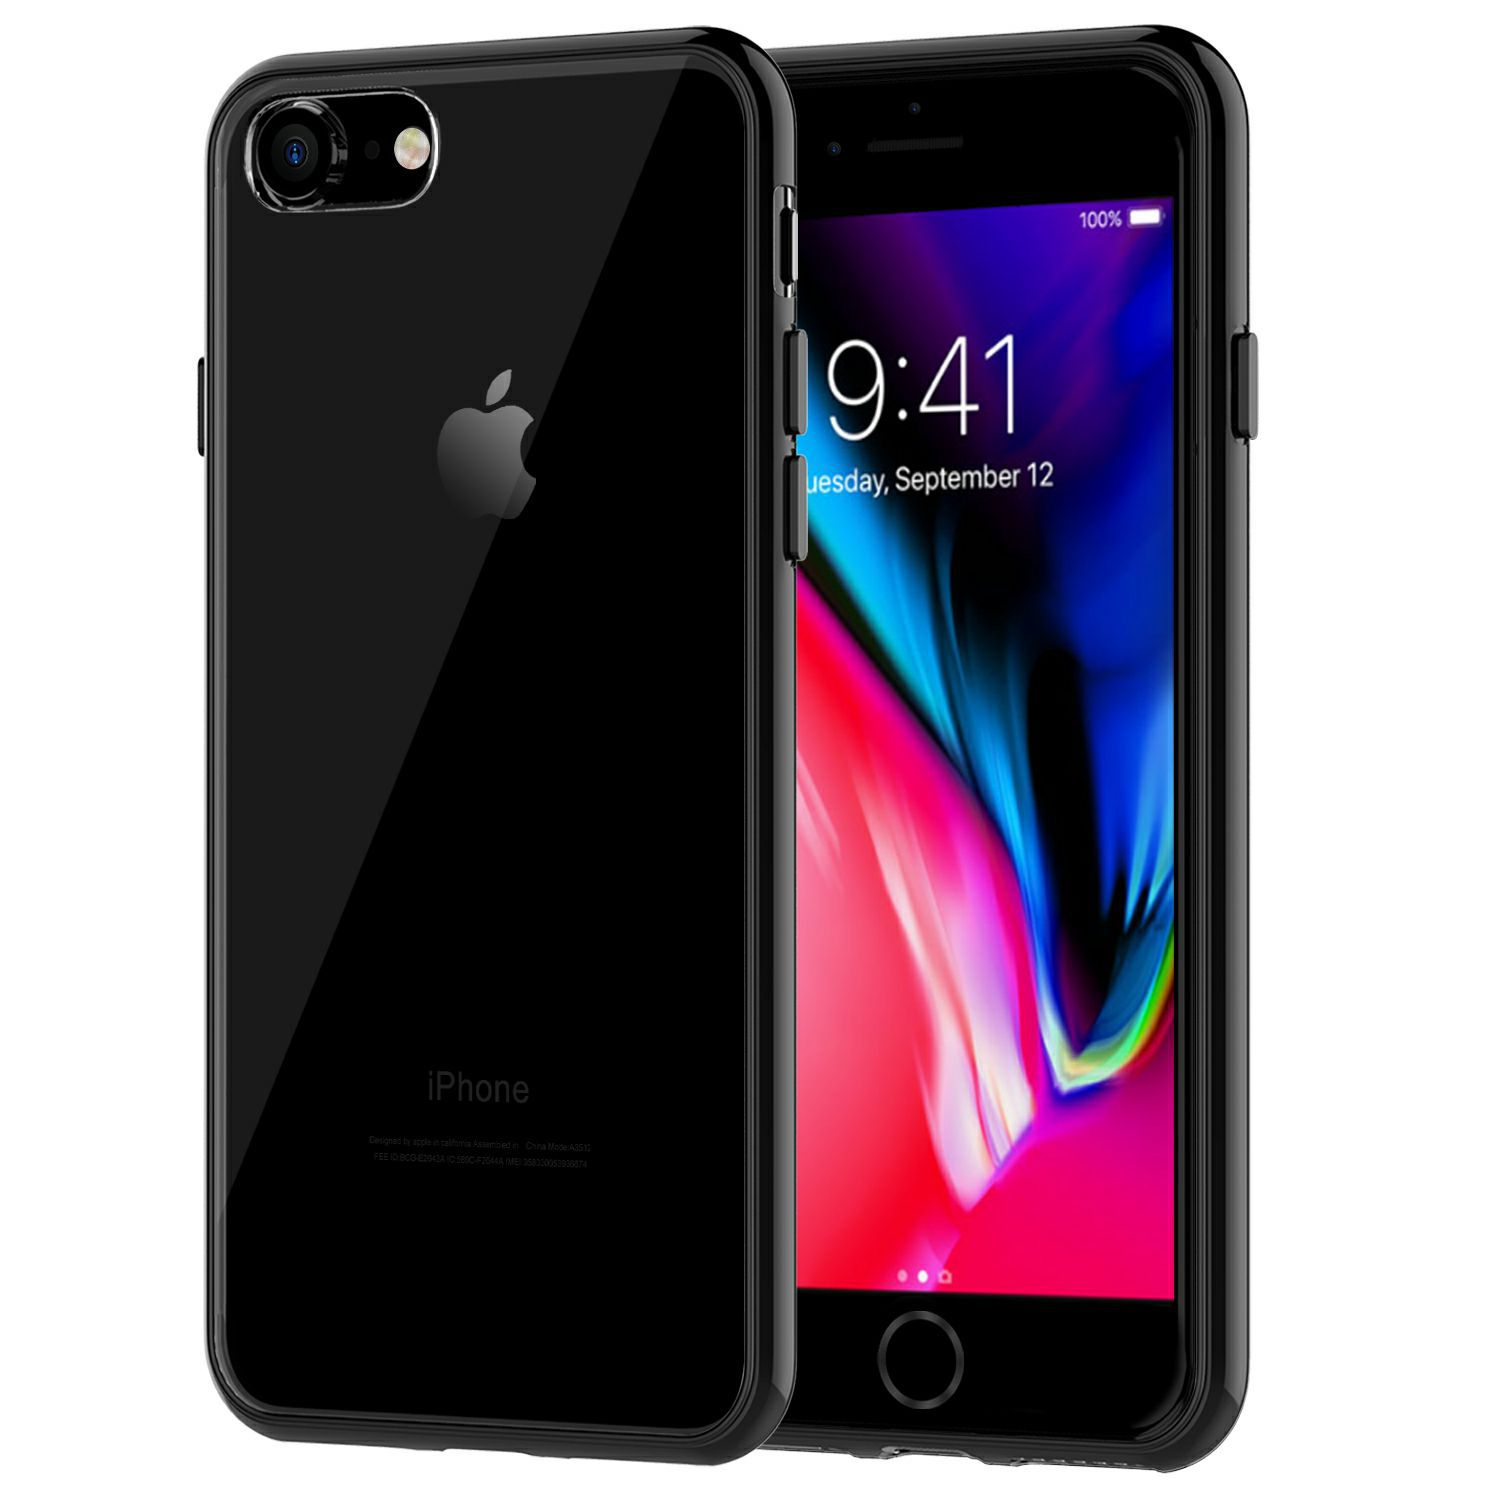 iPhone 7 Case, JETech Apple iPhone 7 Case Cover Shock-Absorption Bumper and Anti-Scratch Clear Back for iPhone 7 4.7 Inch (Black) - 3421